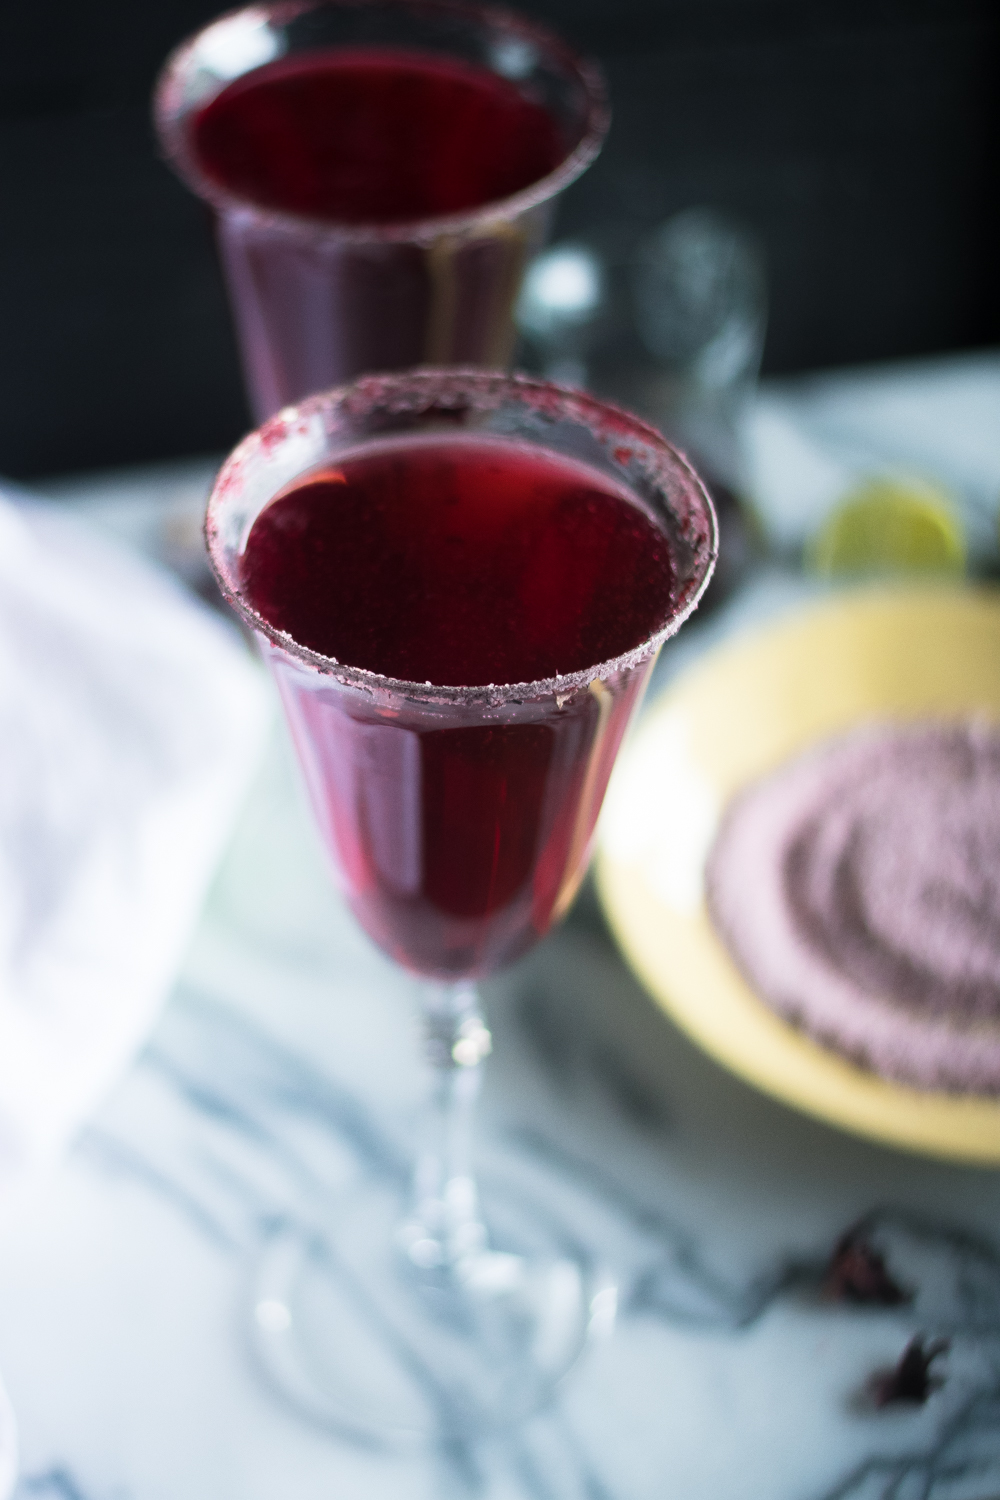 Slightly sweet and tart, these Hibiscus Mimosas are the perfect brunch cocktail.